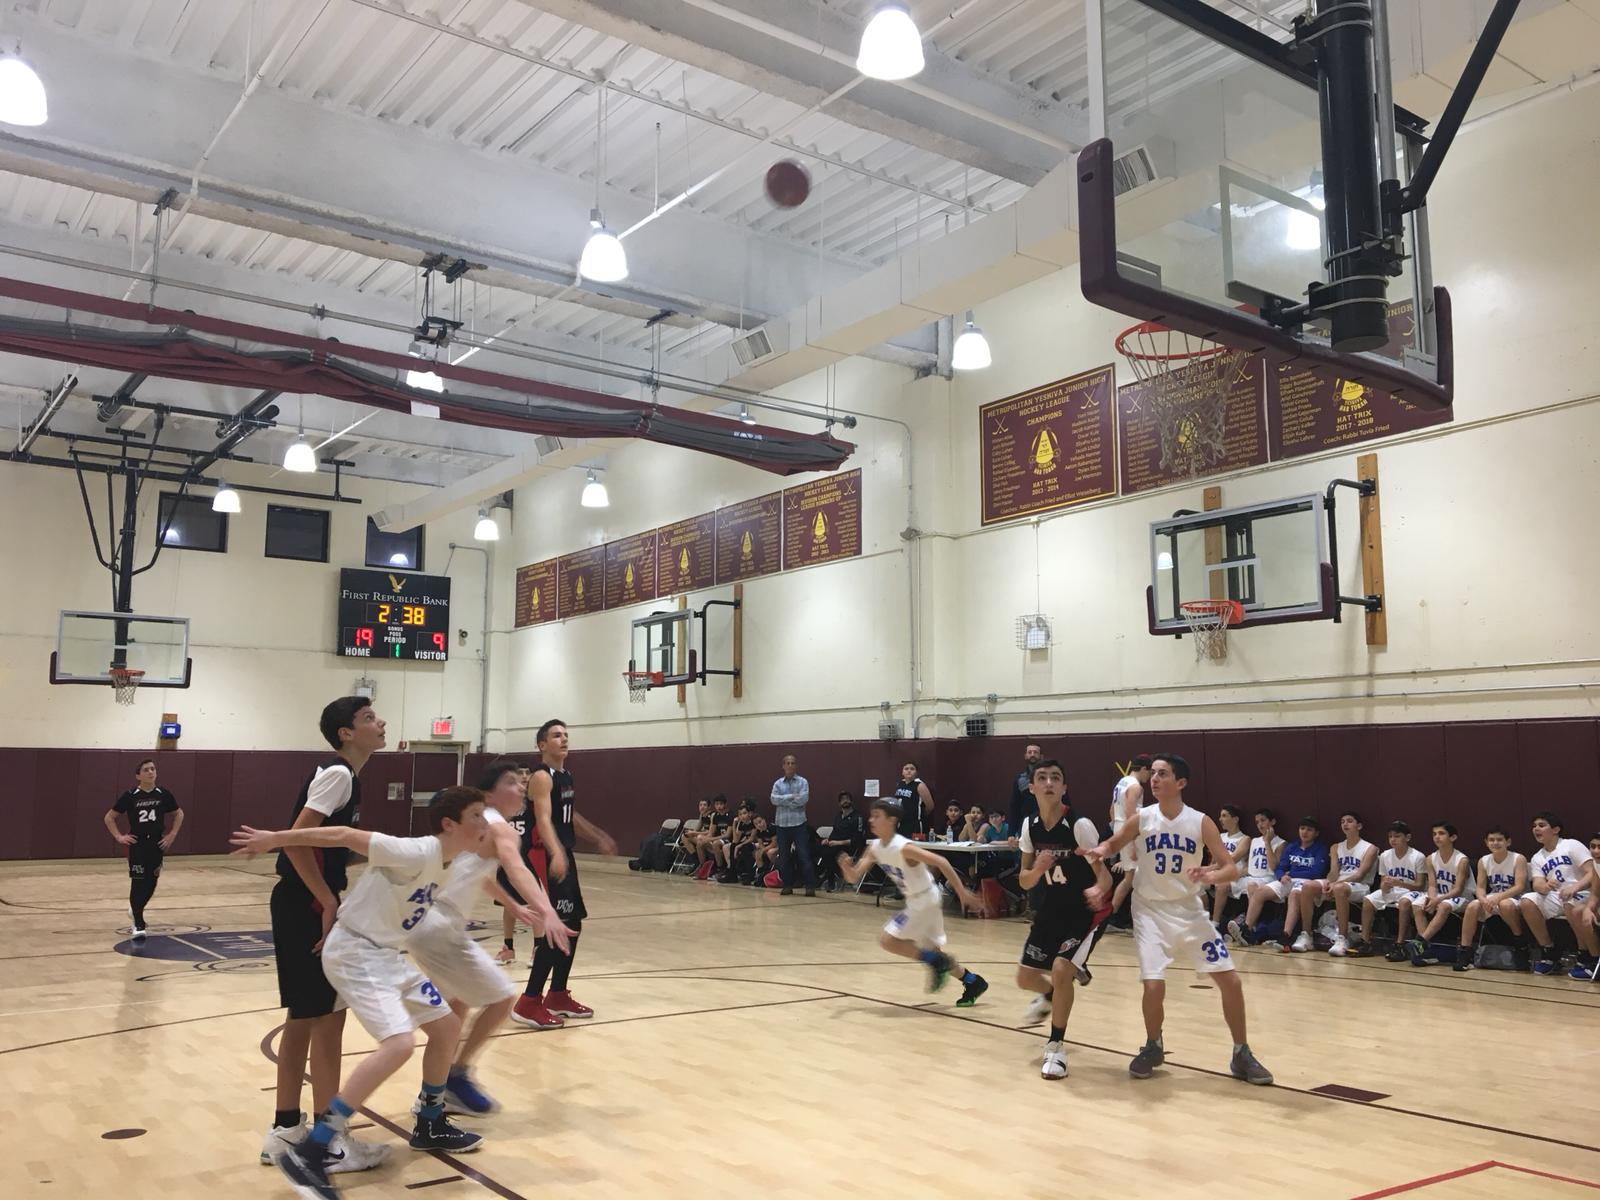 Students from Hebrew Academy of Nassau County play basketball against students from Hillel Yeshiva